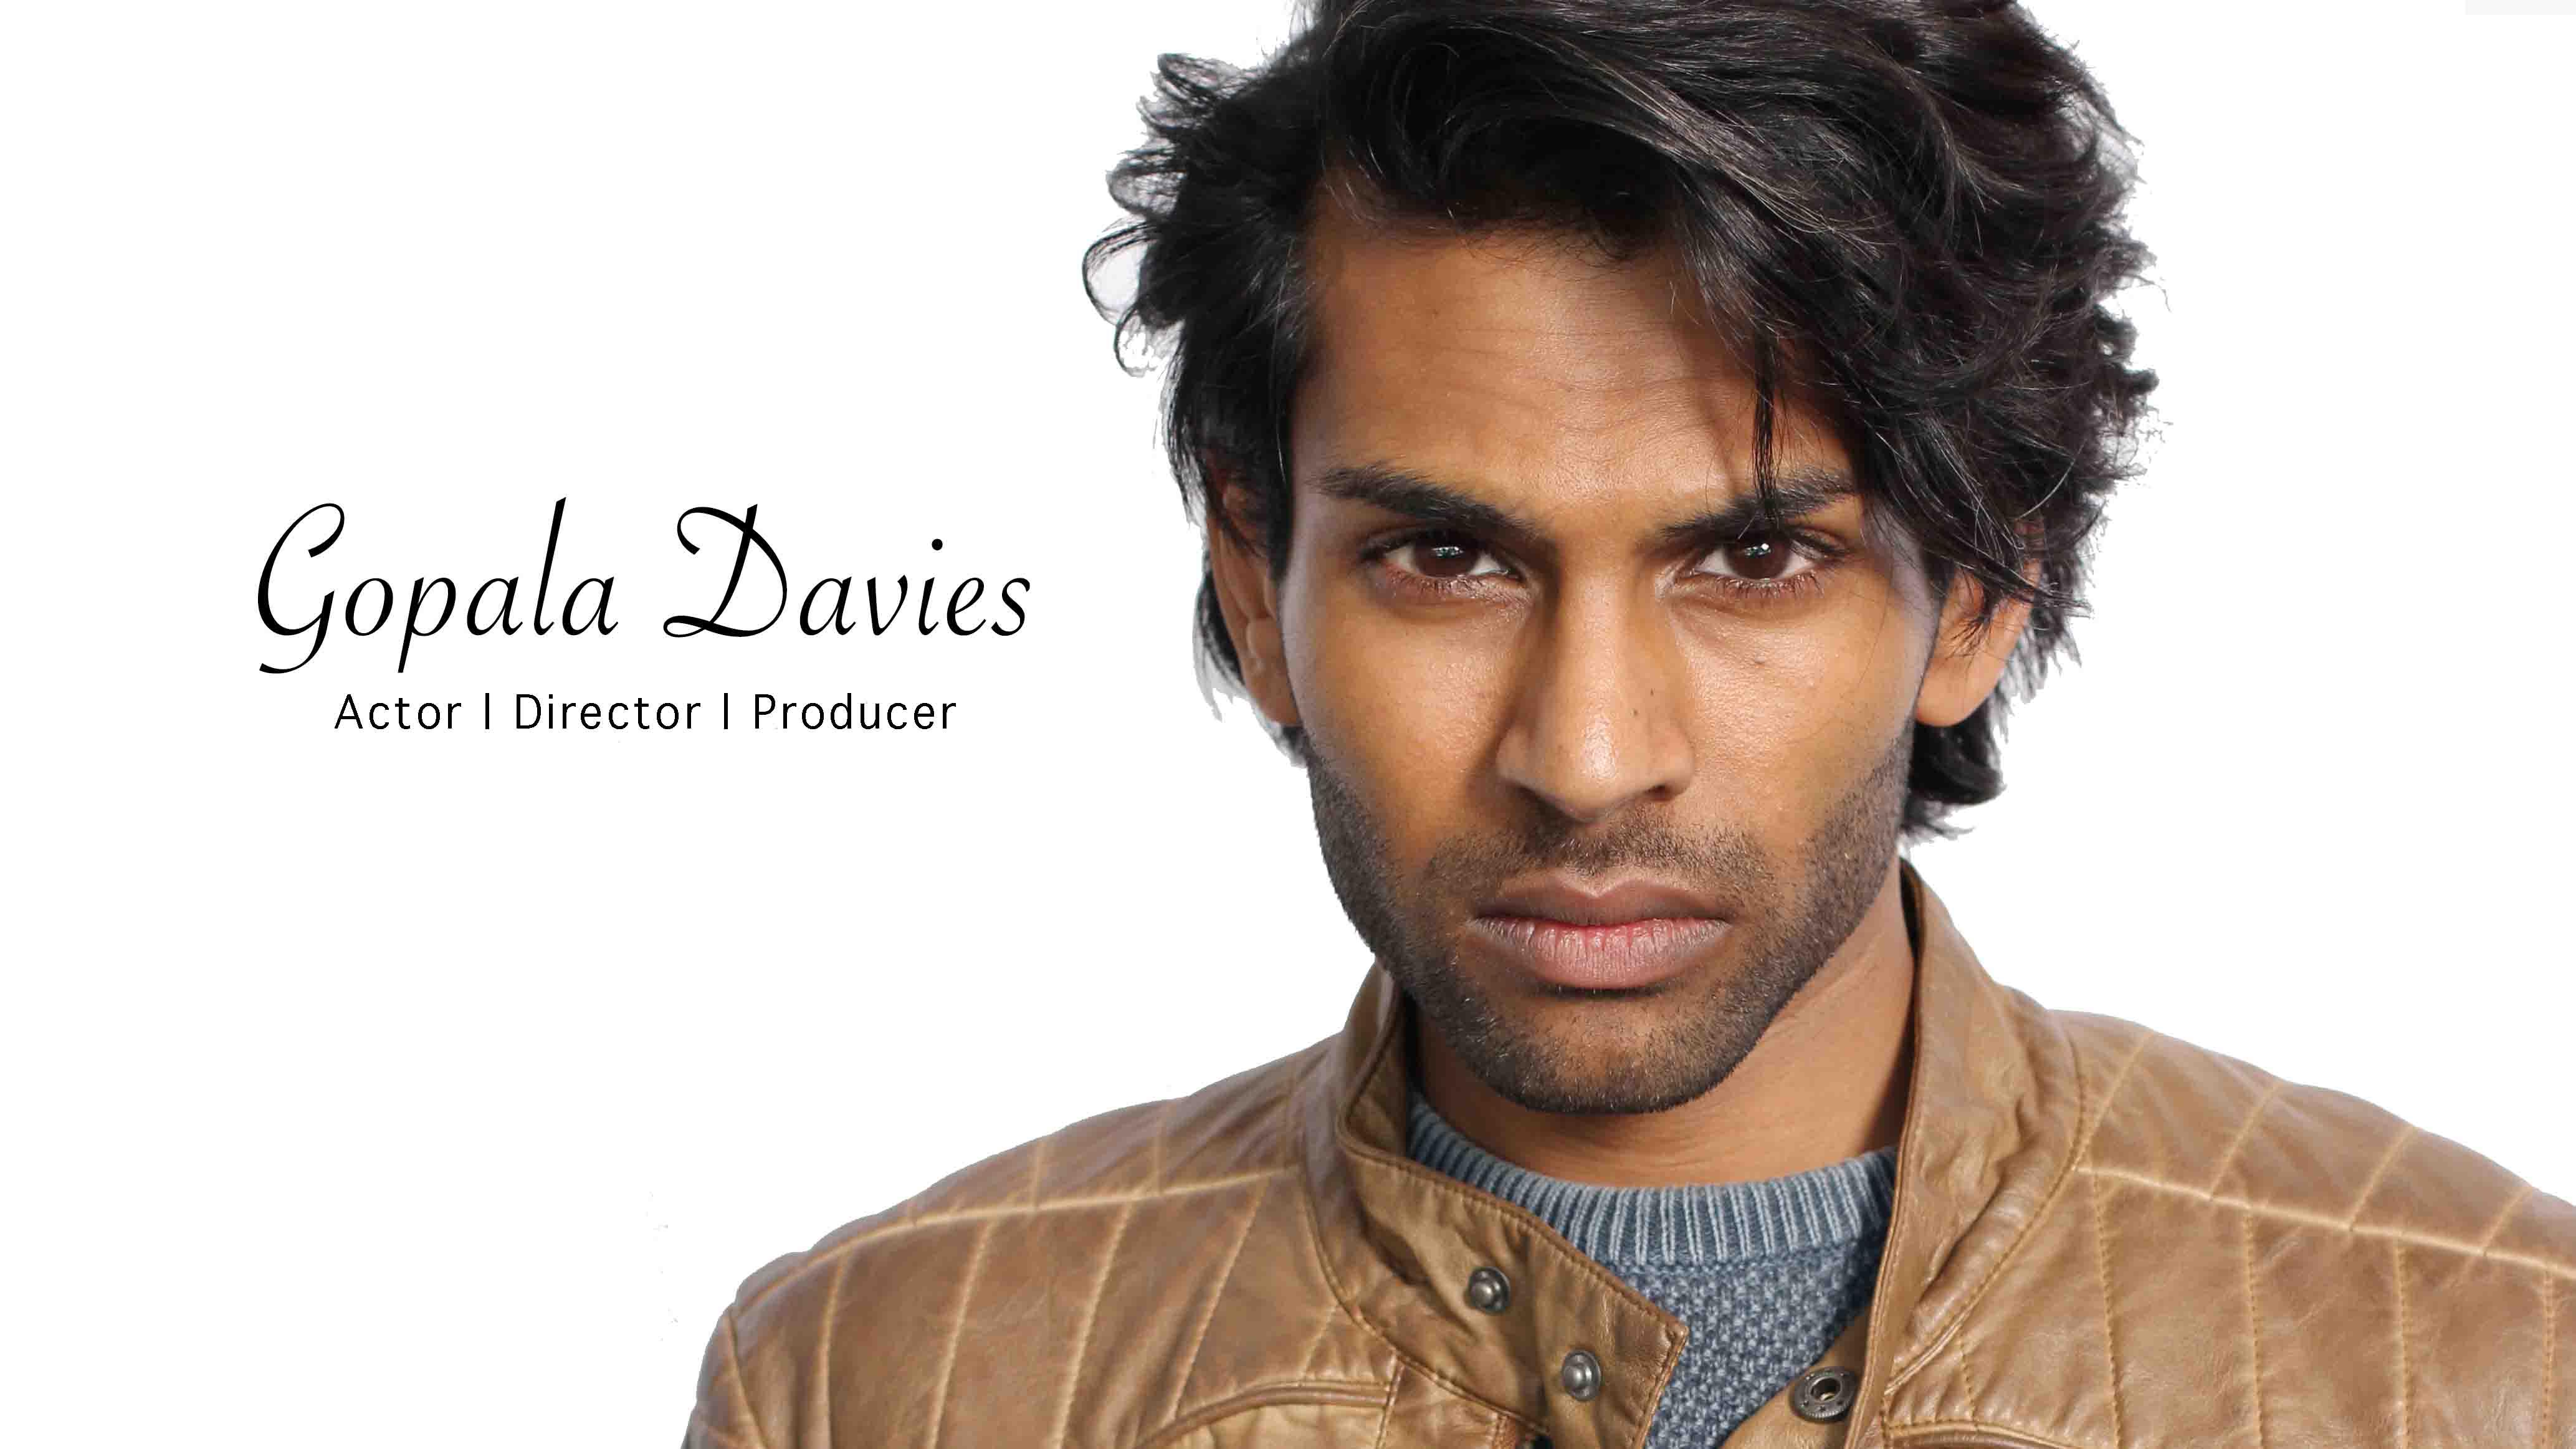 South African Indian Actor Gopala Davies